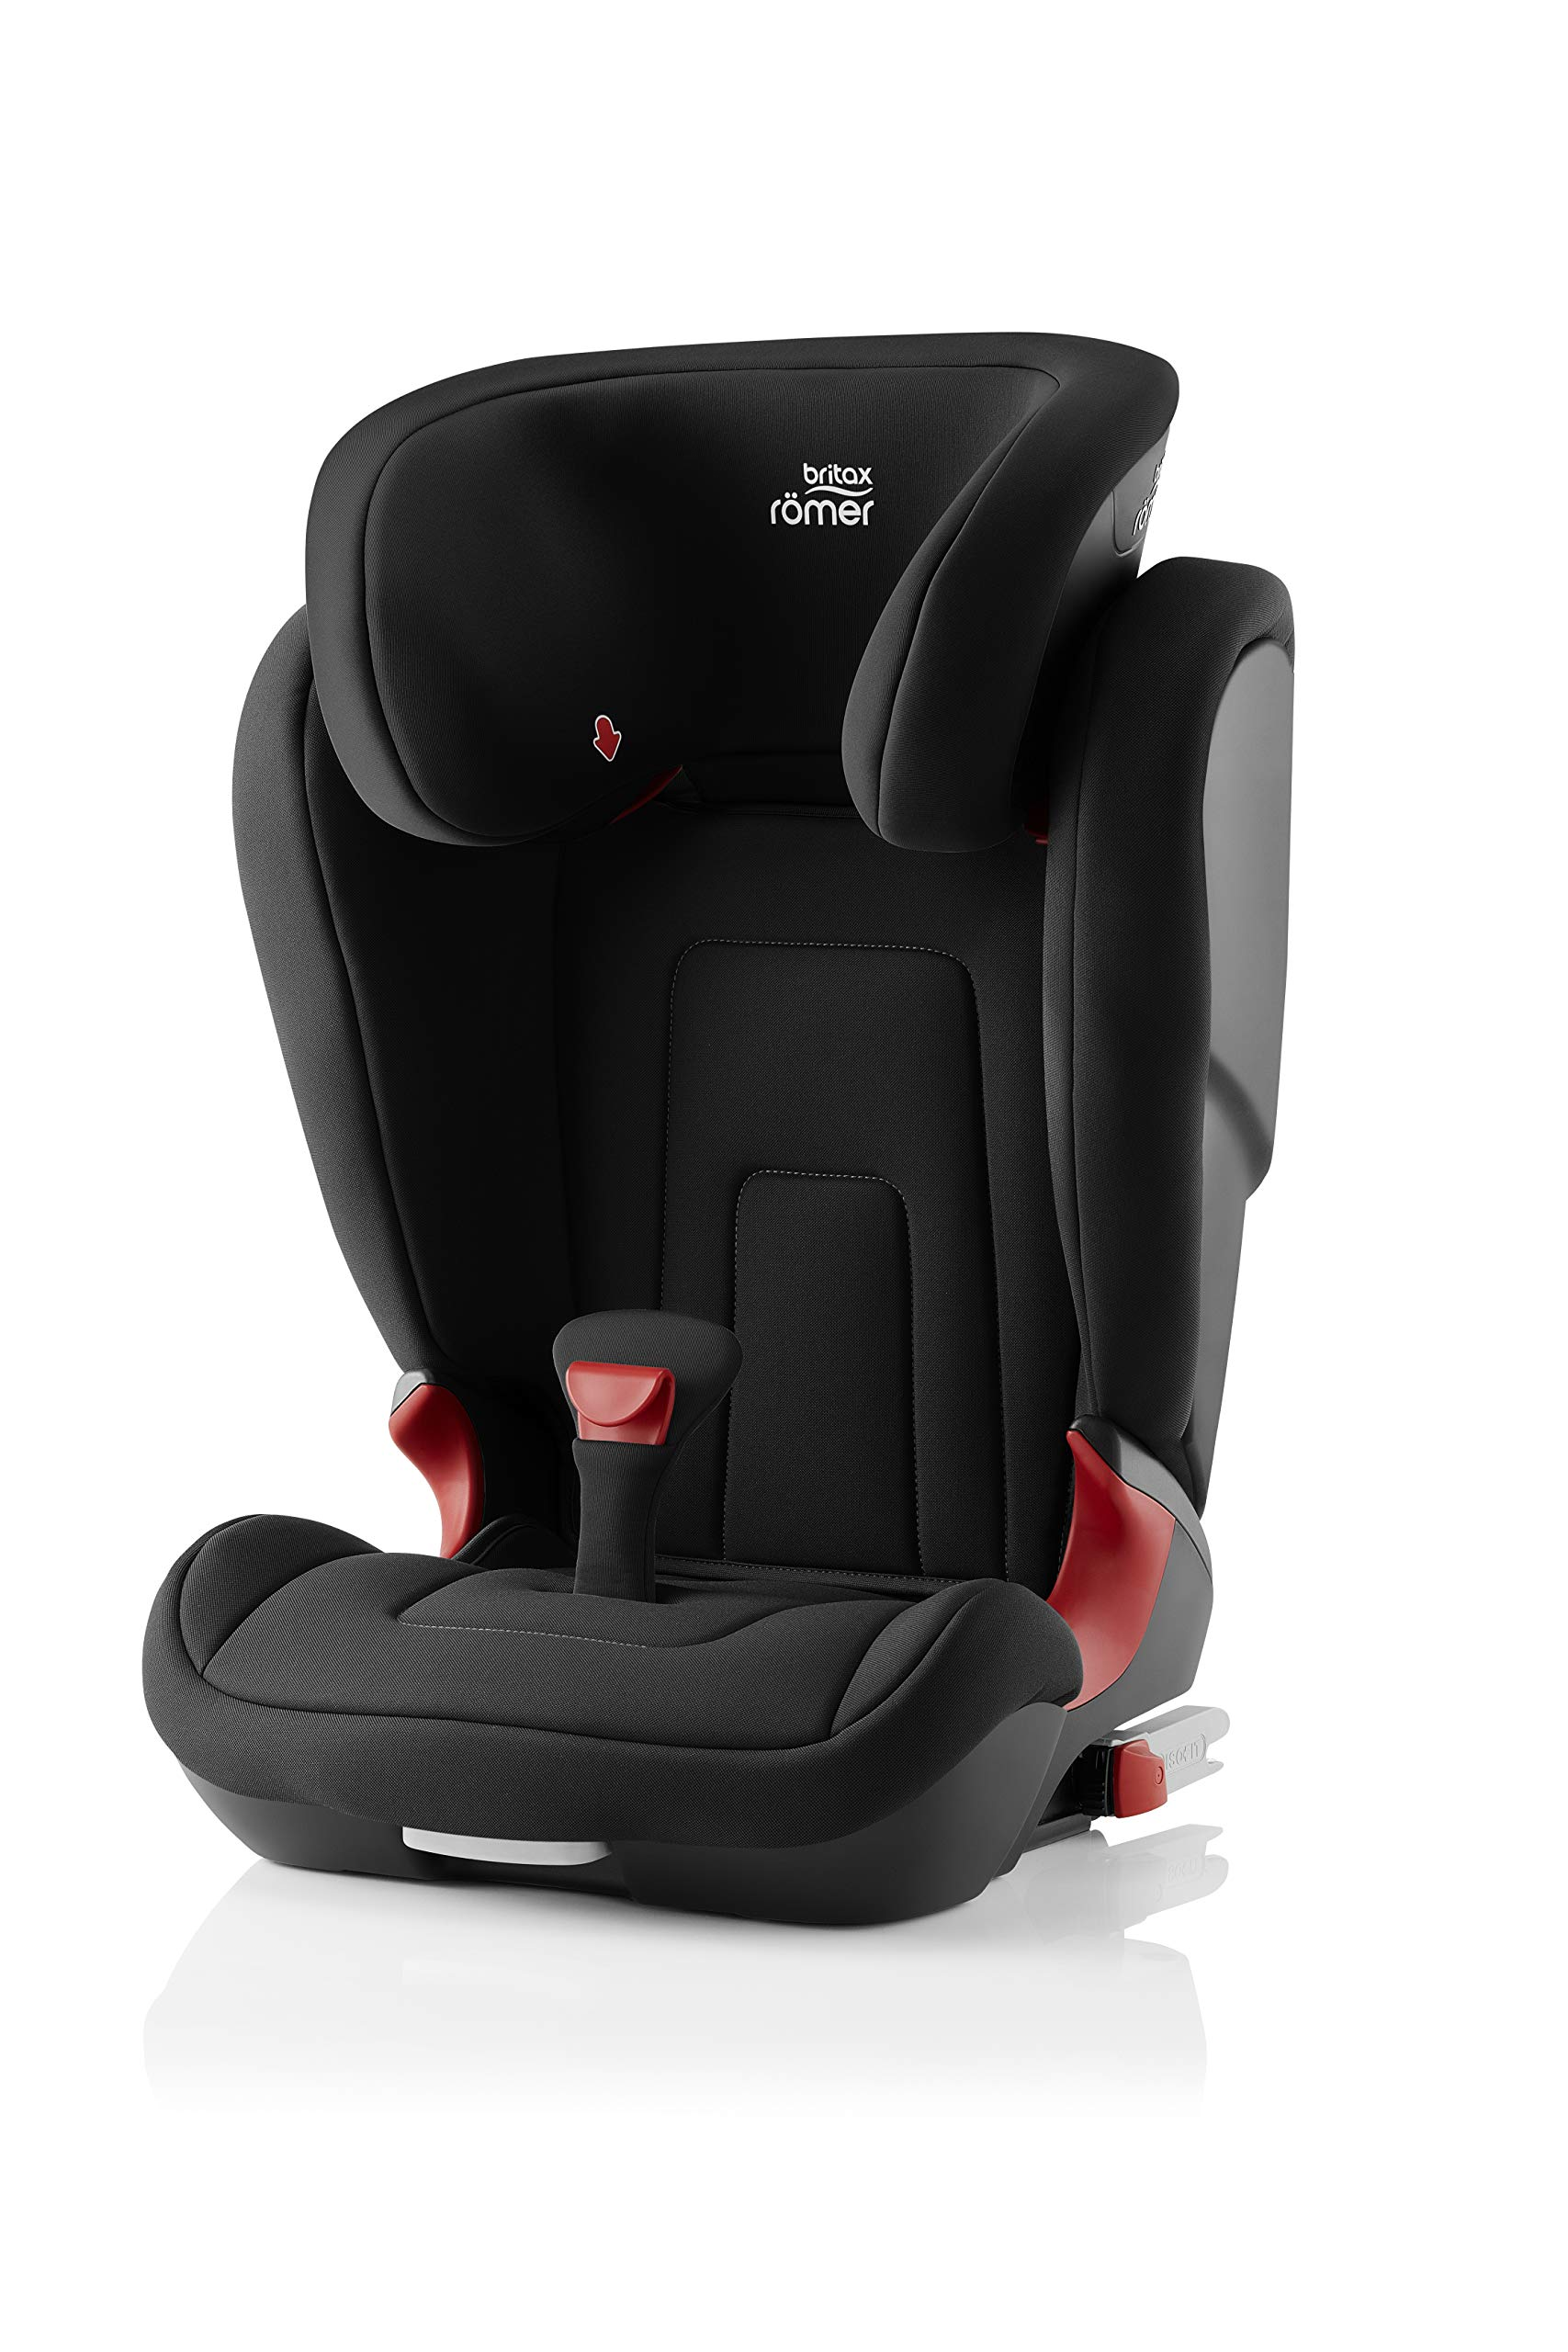 Britax Römer car seat 15-36 kg, KIDFIX 2 R Isofix group 2/3, Cosmos Black Britax Römer Secure guard - helps to protect your child's delicate abdominal area by adding an extra - a 4th - contact point to the 3-point seat belt. High back booster - protects your child in 3 ways: provides head to hip protection; belt guides provide correct positioning of the seat belt and the padded headrest provides safety and comfort. Easy adjustable v-shaped backrest - designed to give optimum support to your growing child, the v-shaped backrest provides more space for their back and shoulders. 1